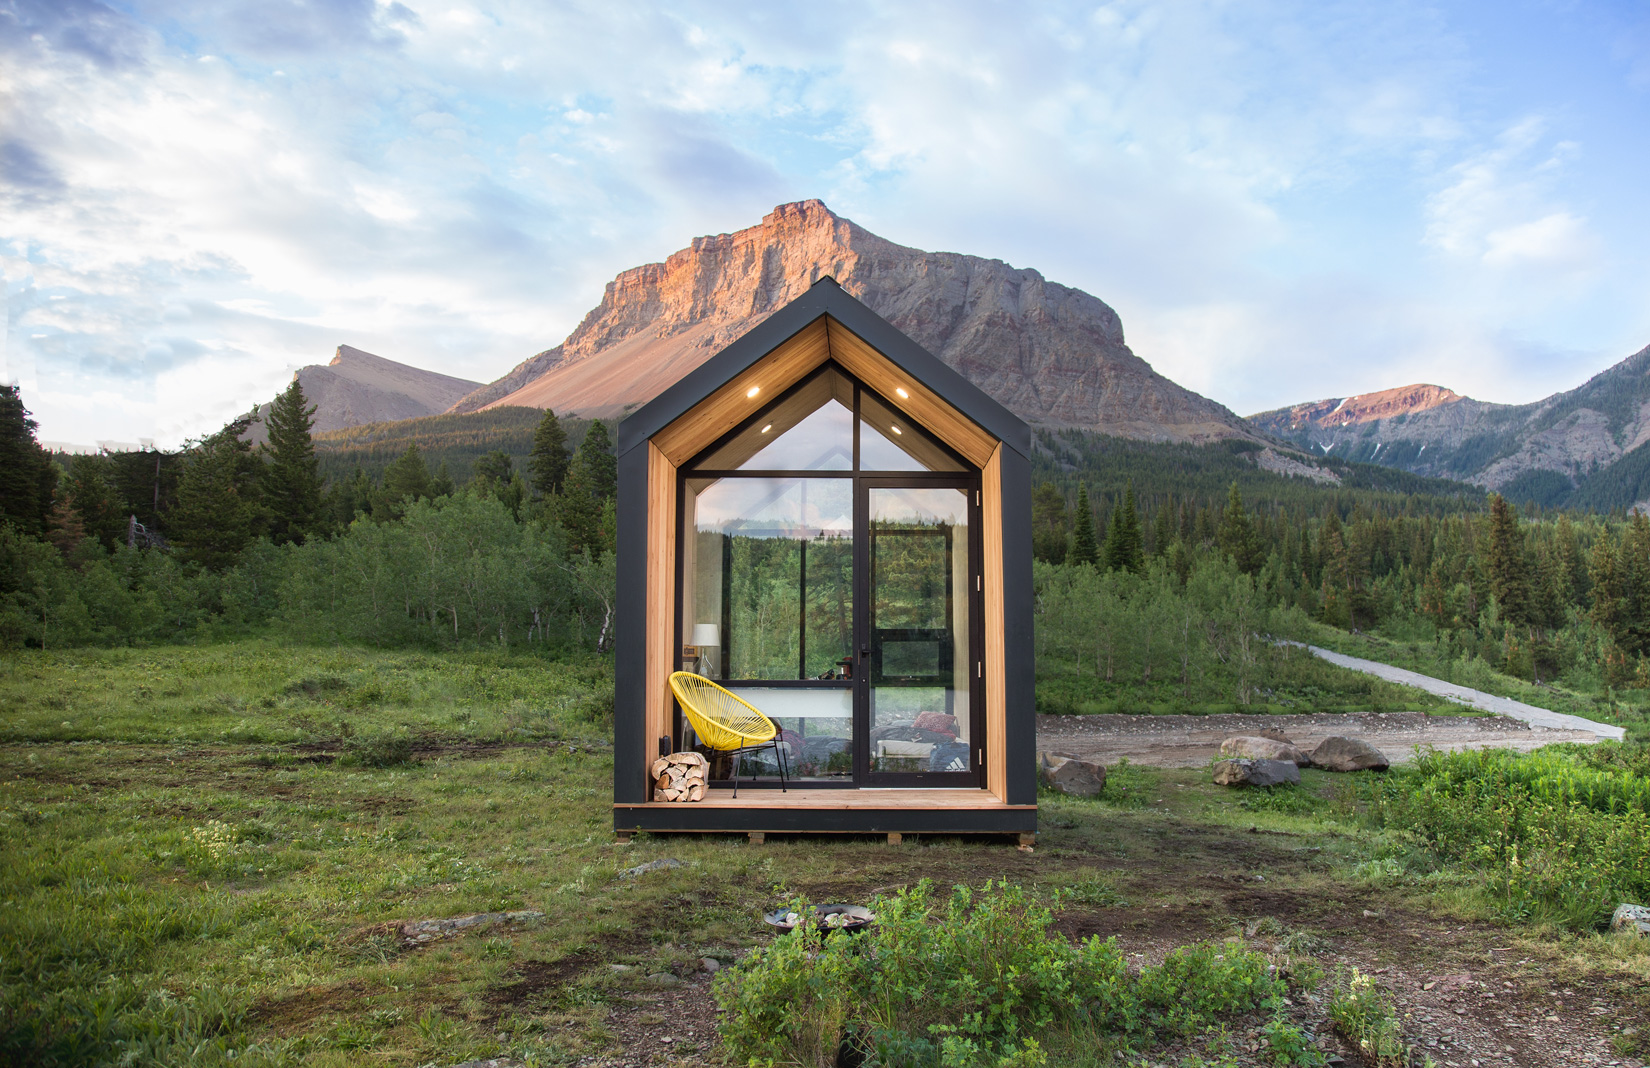 Mono is a 'plug and play' prefab cabin costing just $21k